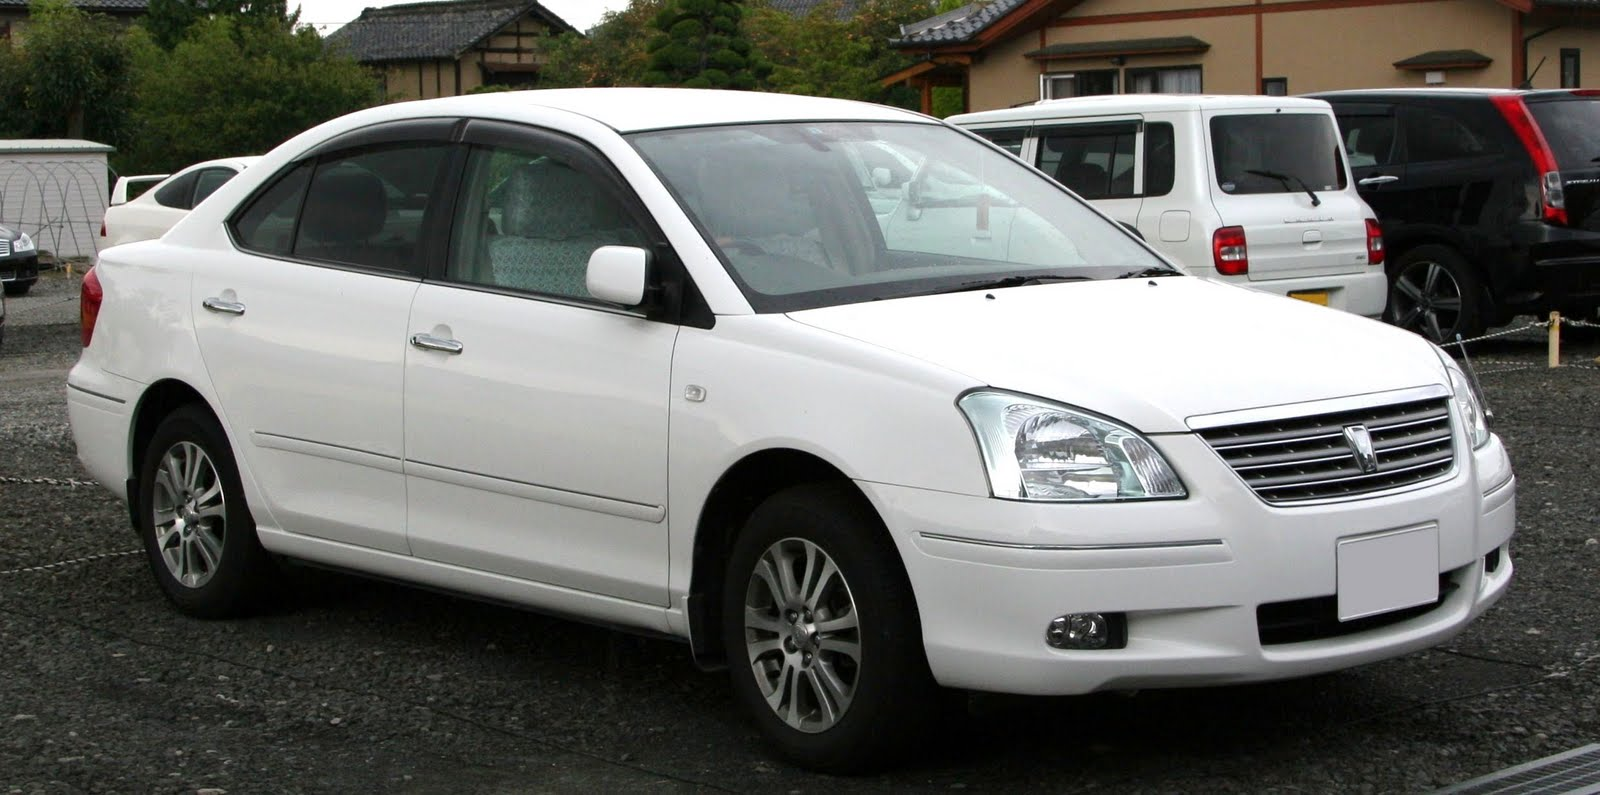 Toyota Corolla 2010 For Sale >> Cars Pictures & Information: Toyota Premio